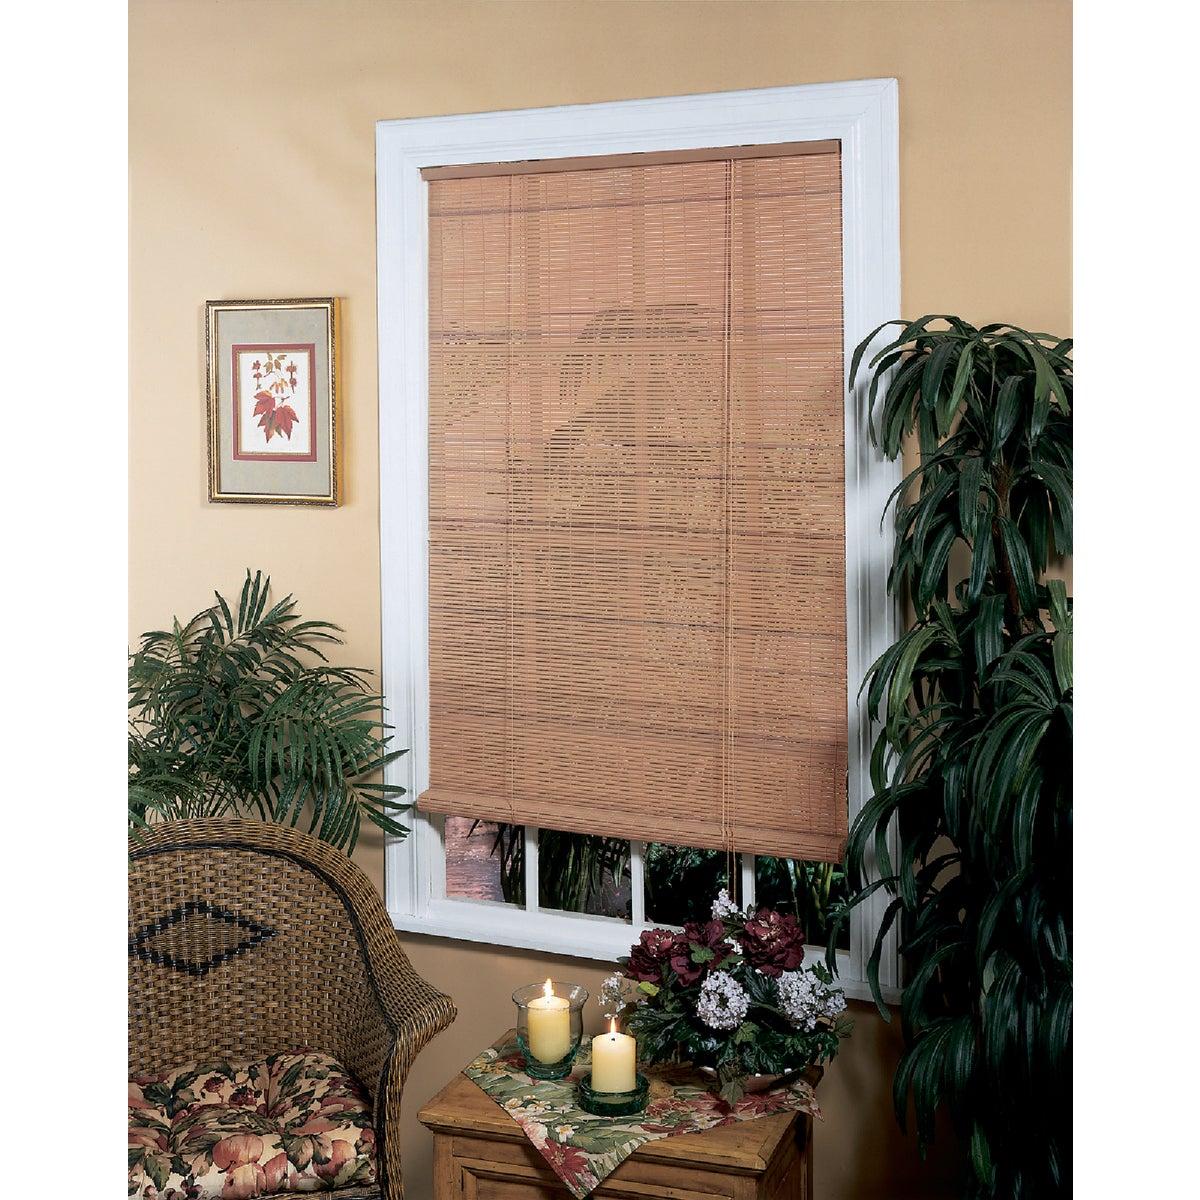 96X72 WDGN ROLL-UP BLIND